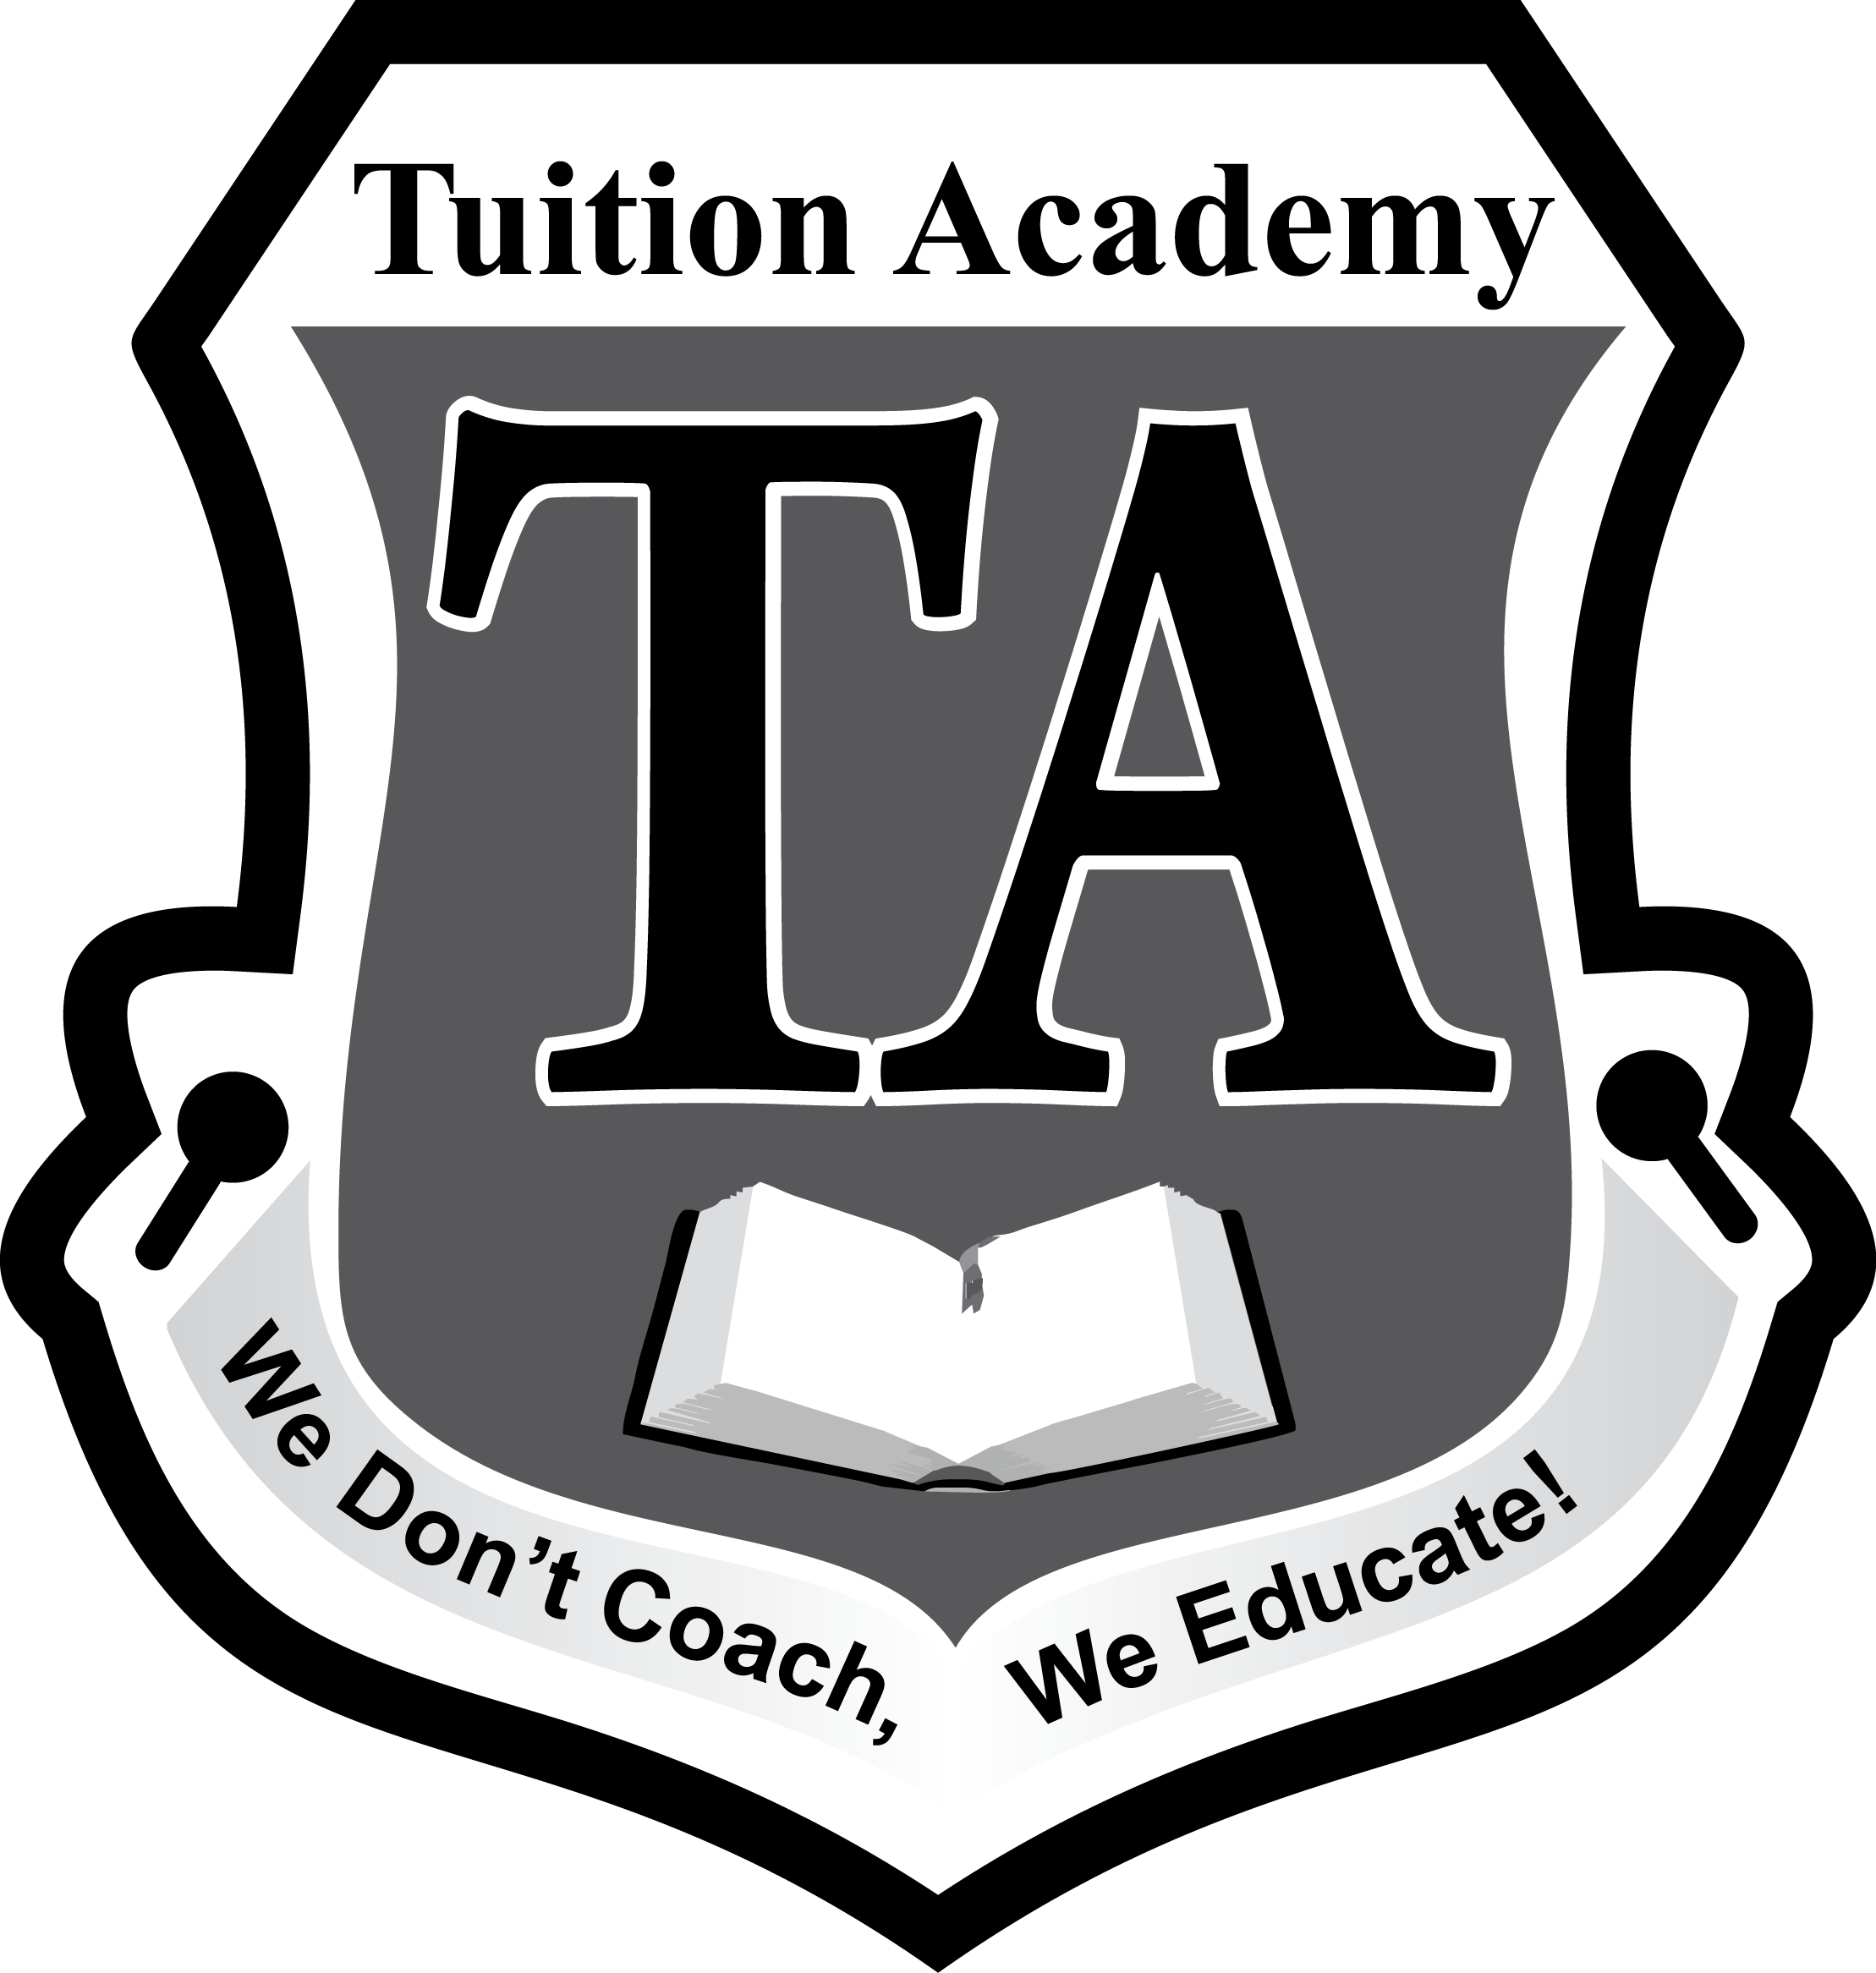 Read Tuition Academy  Reviews